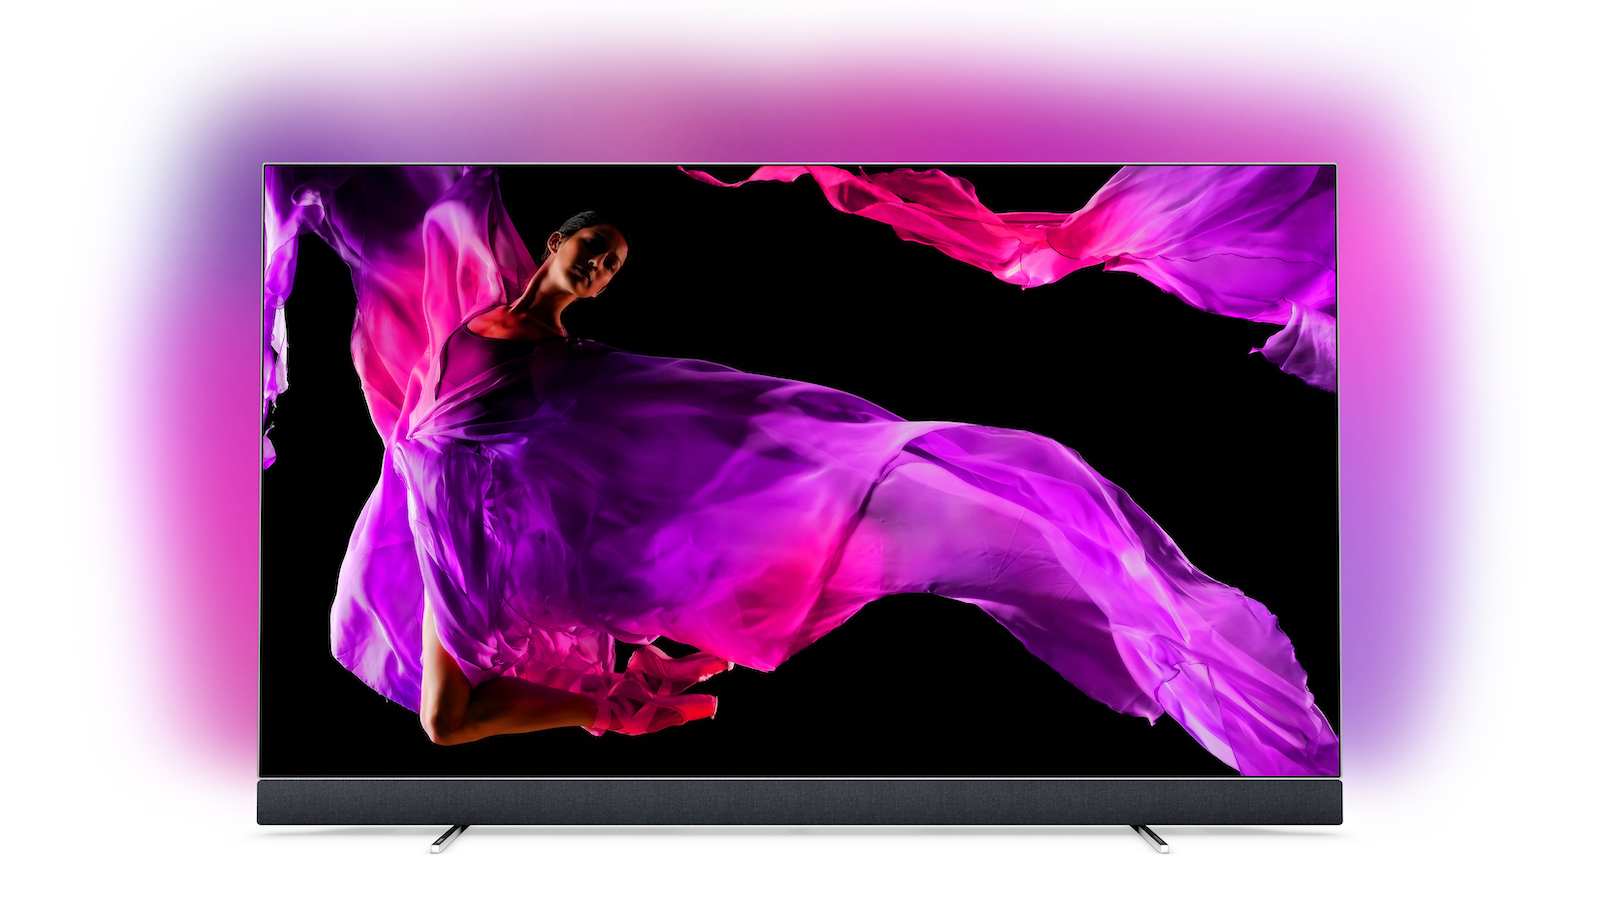 1eb135d41d7d The best OLED TV deals on Amazon Prime Day 2019 | What Hi-Fi?